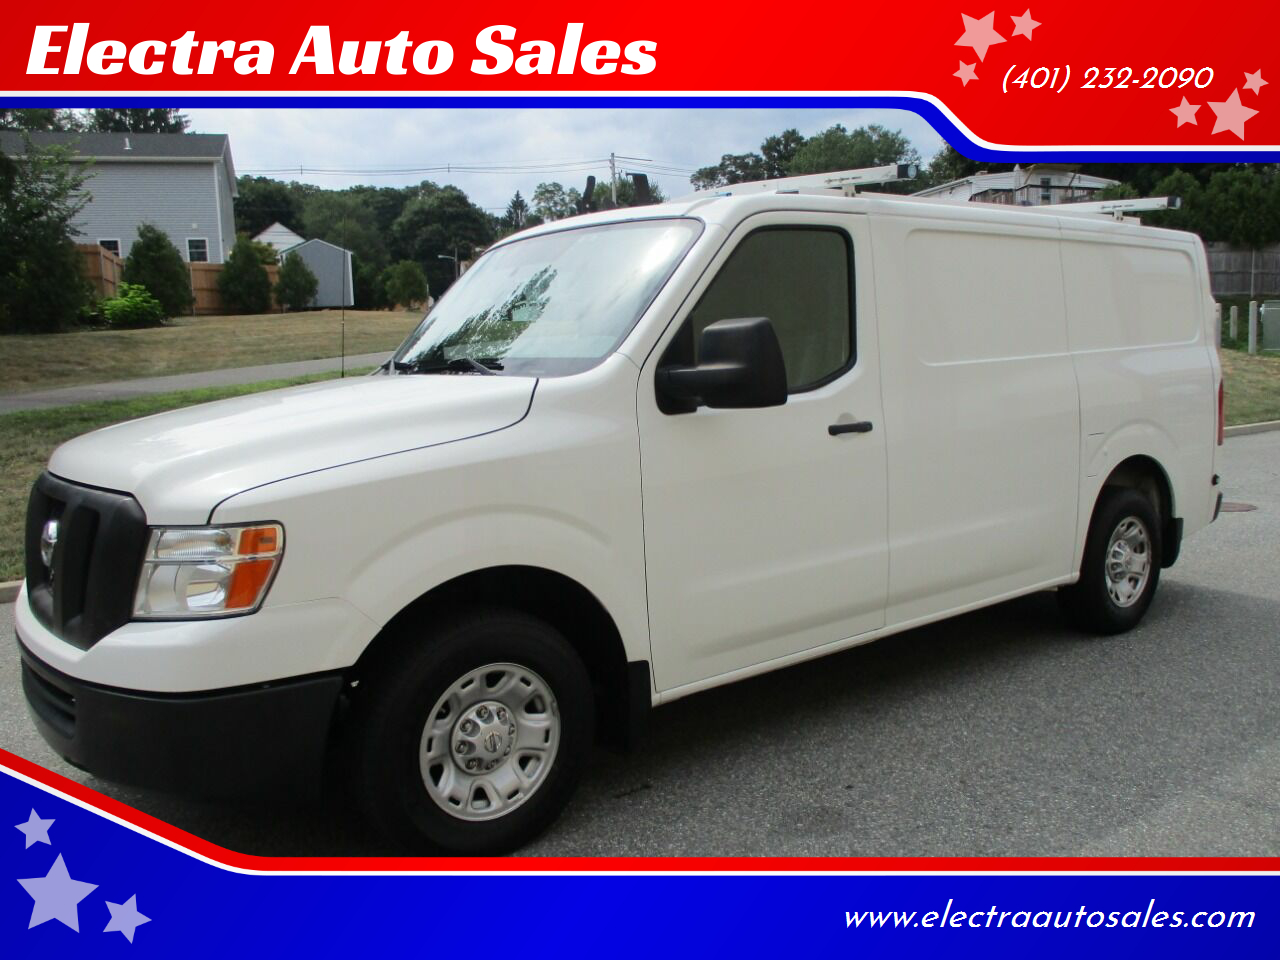 electra auto sales 42 putnam pike johnston ri 02919 buy sell auto mart buy sell auto mart